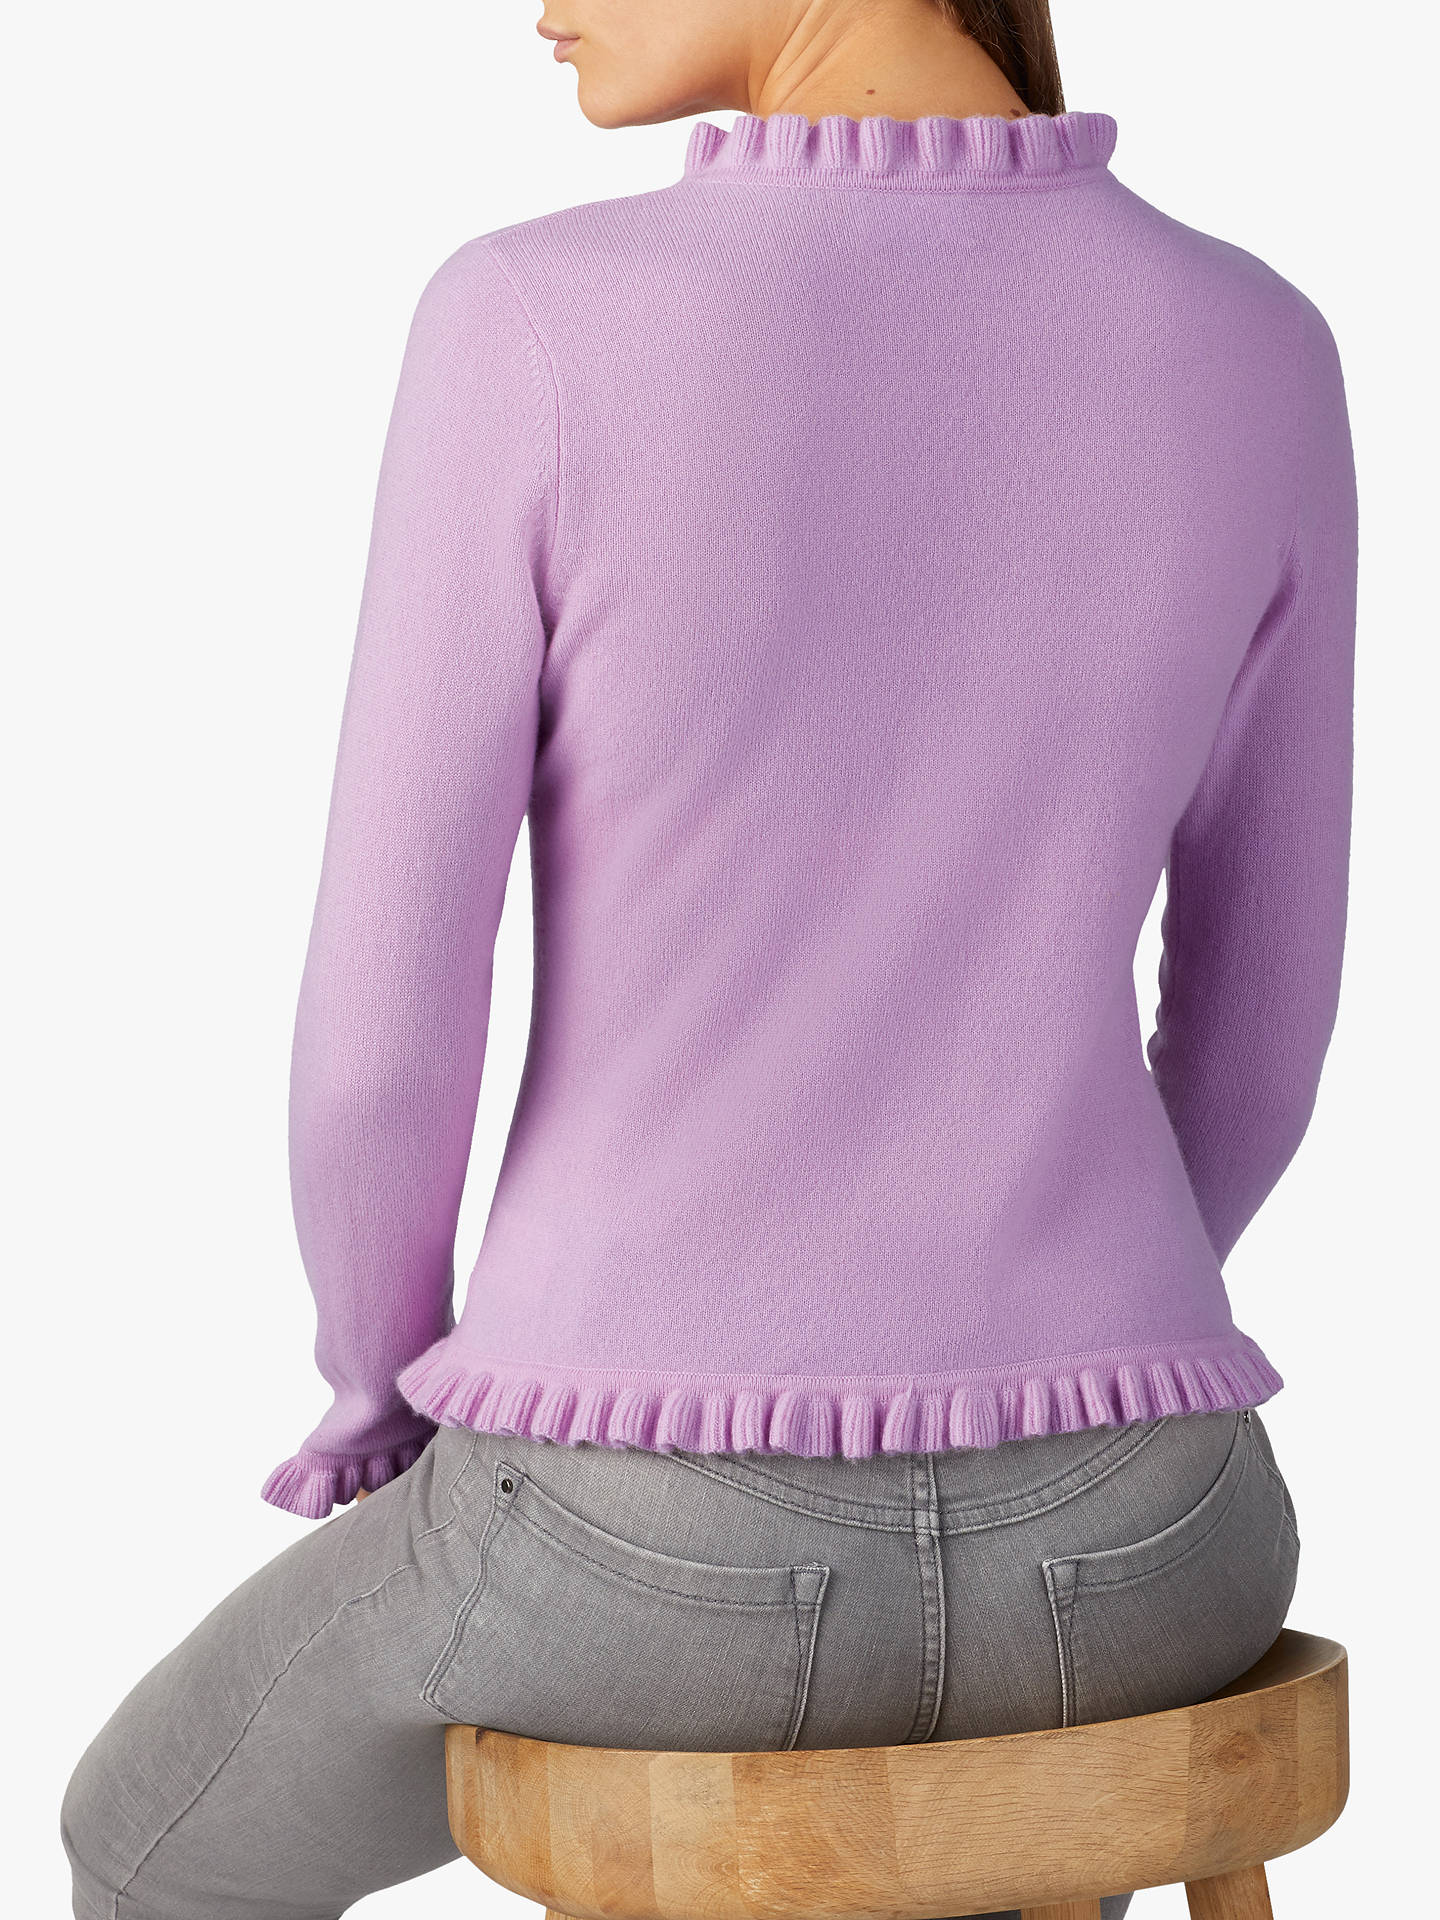 BuyPure Collection Fewston Ruffle Edge Cashmere Cardigan, Lilac, 8 Online at johnlewis.com